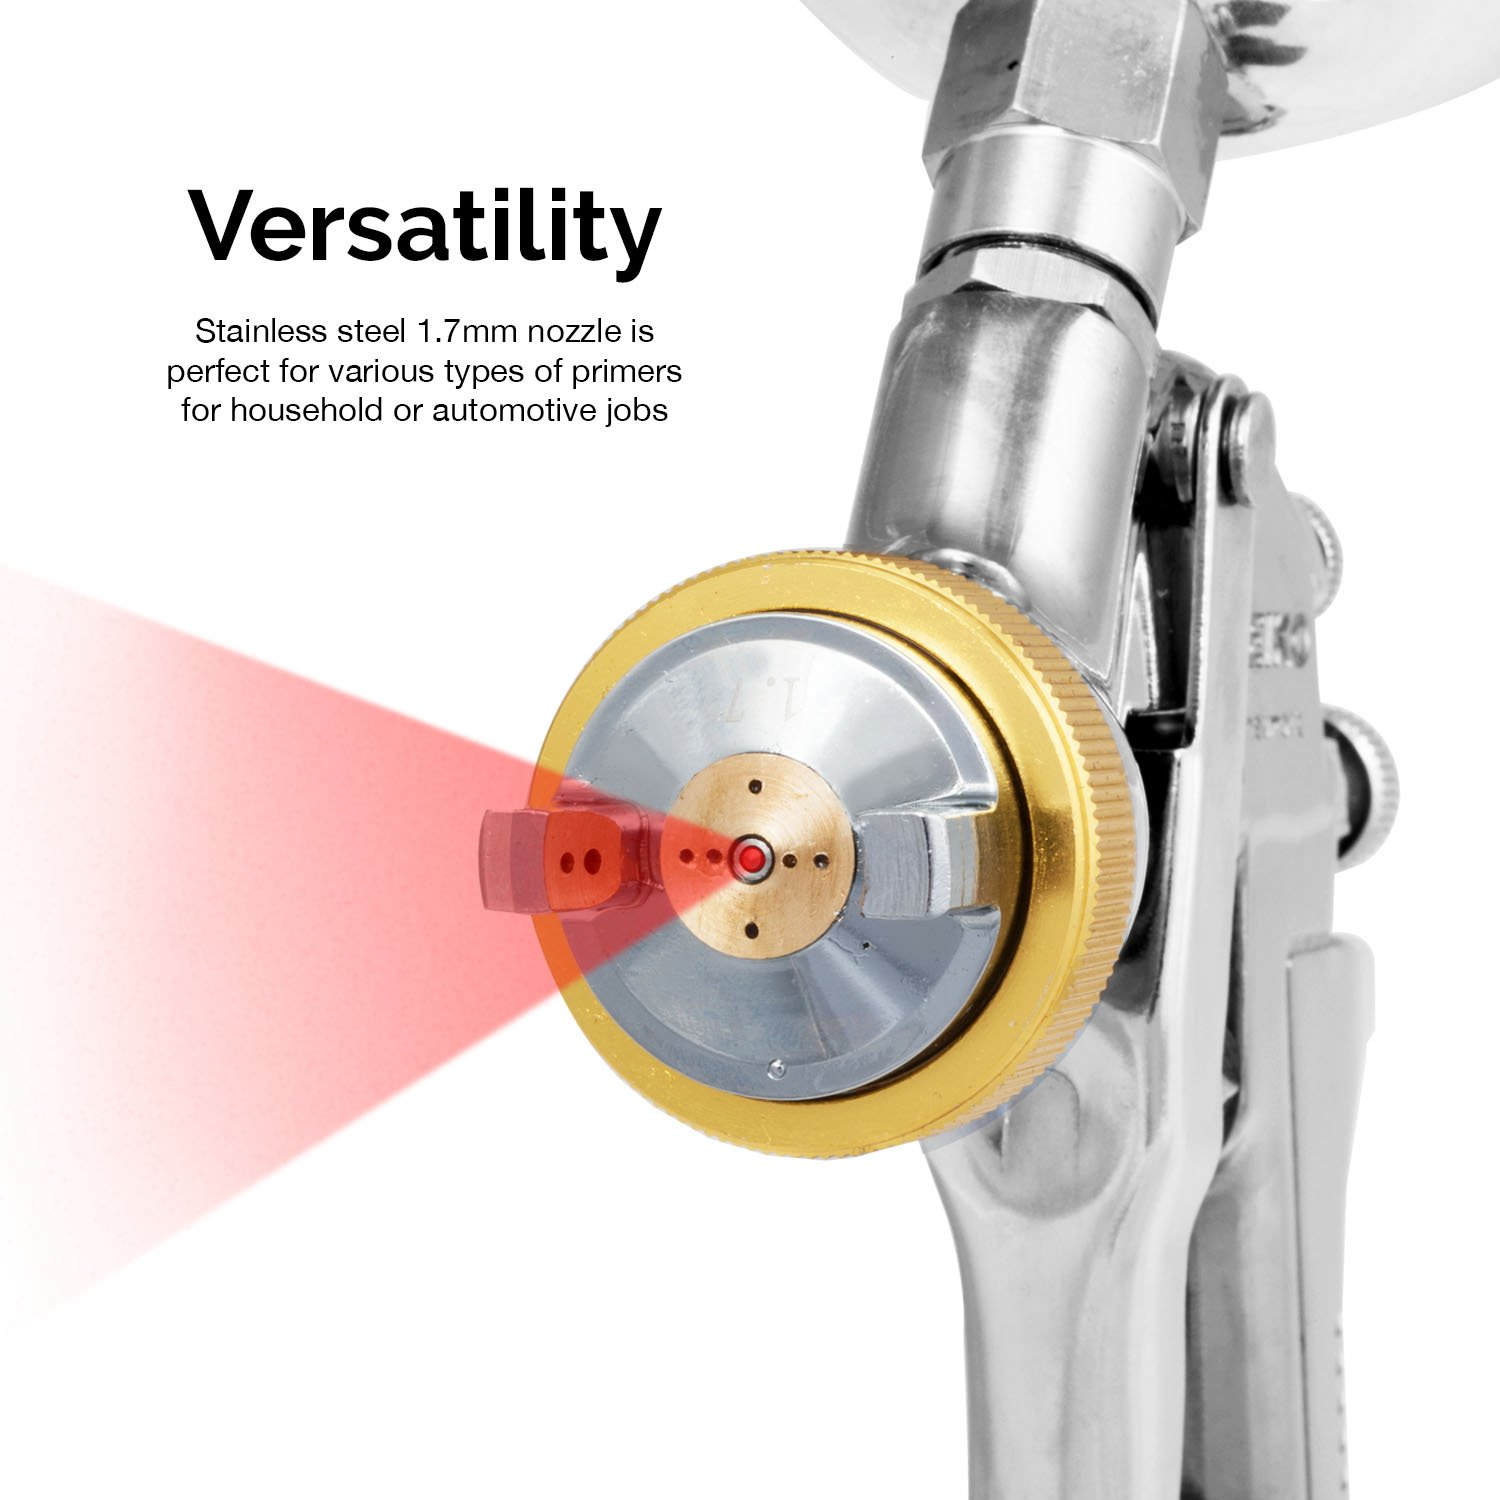 Neiko 31215A HVLP Gravity Feed Air Spray Gun | 1.7mm Nozzle Size | 600cc Aluminum Cup by Neiko (Image #4)